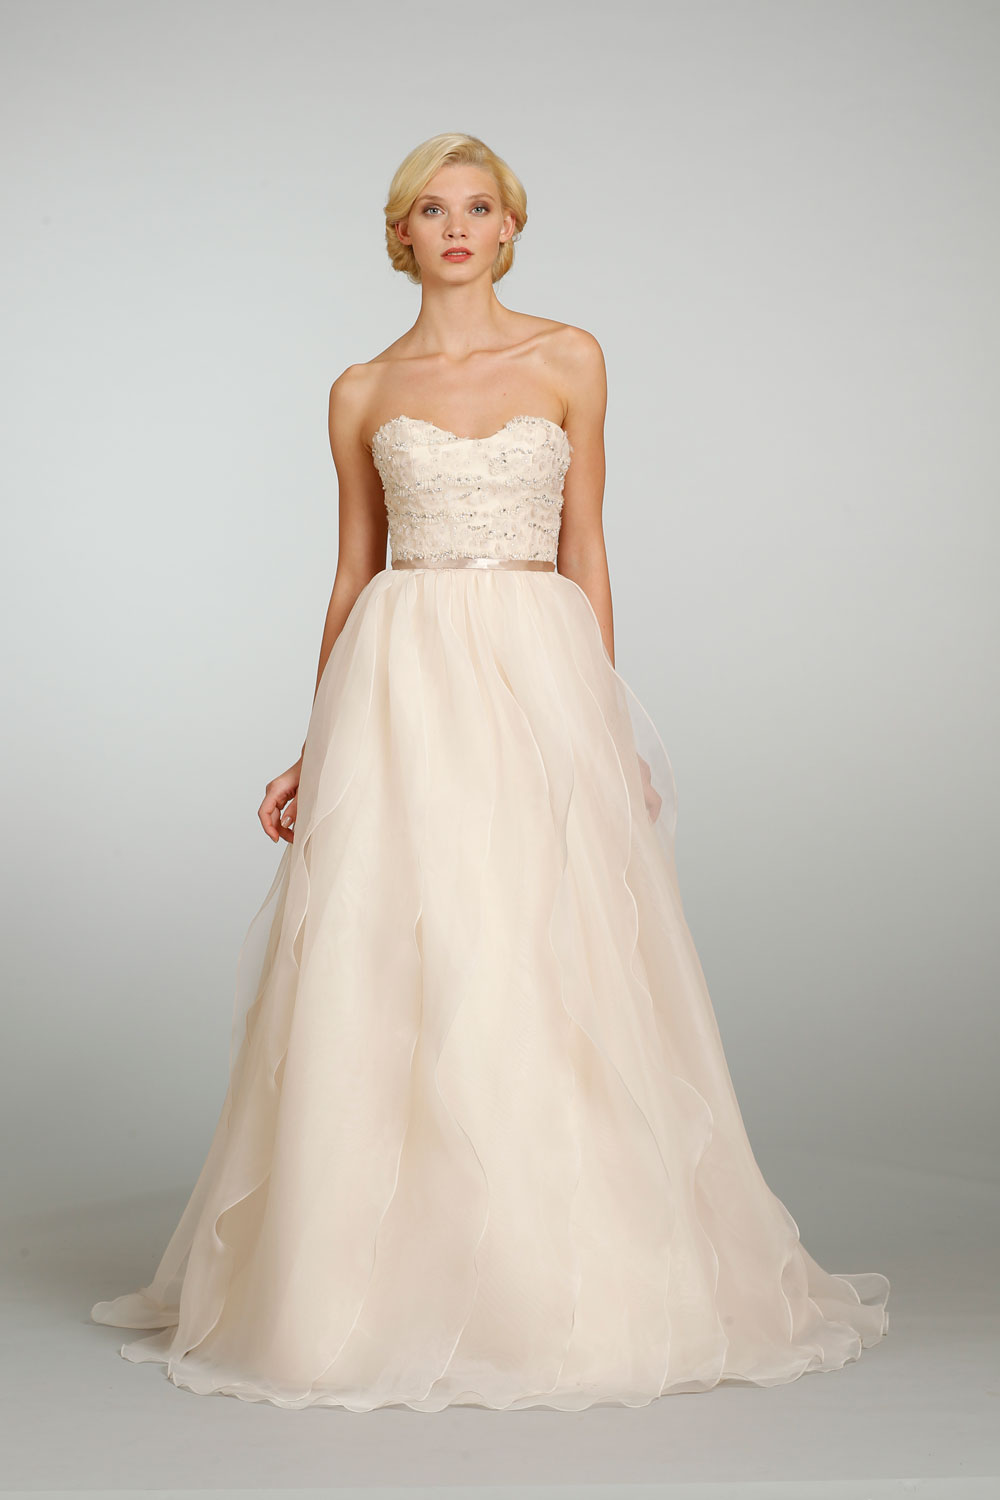 Image Result For Pink Wedding Gowns